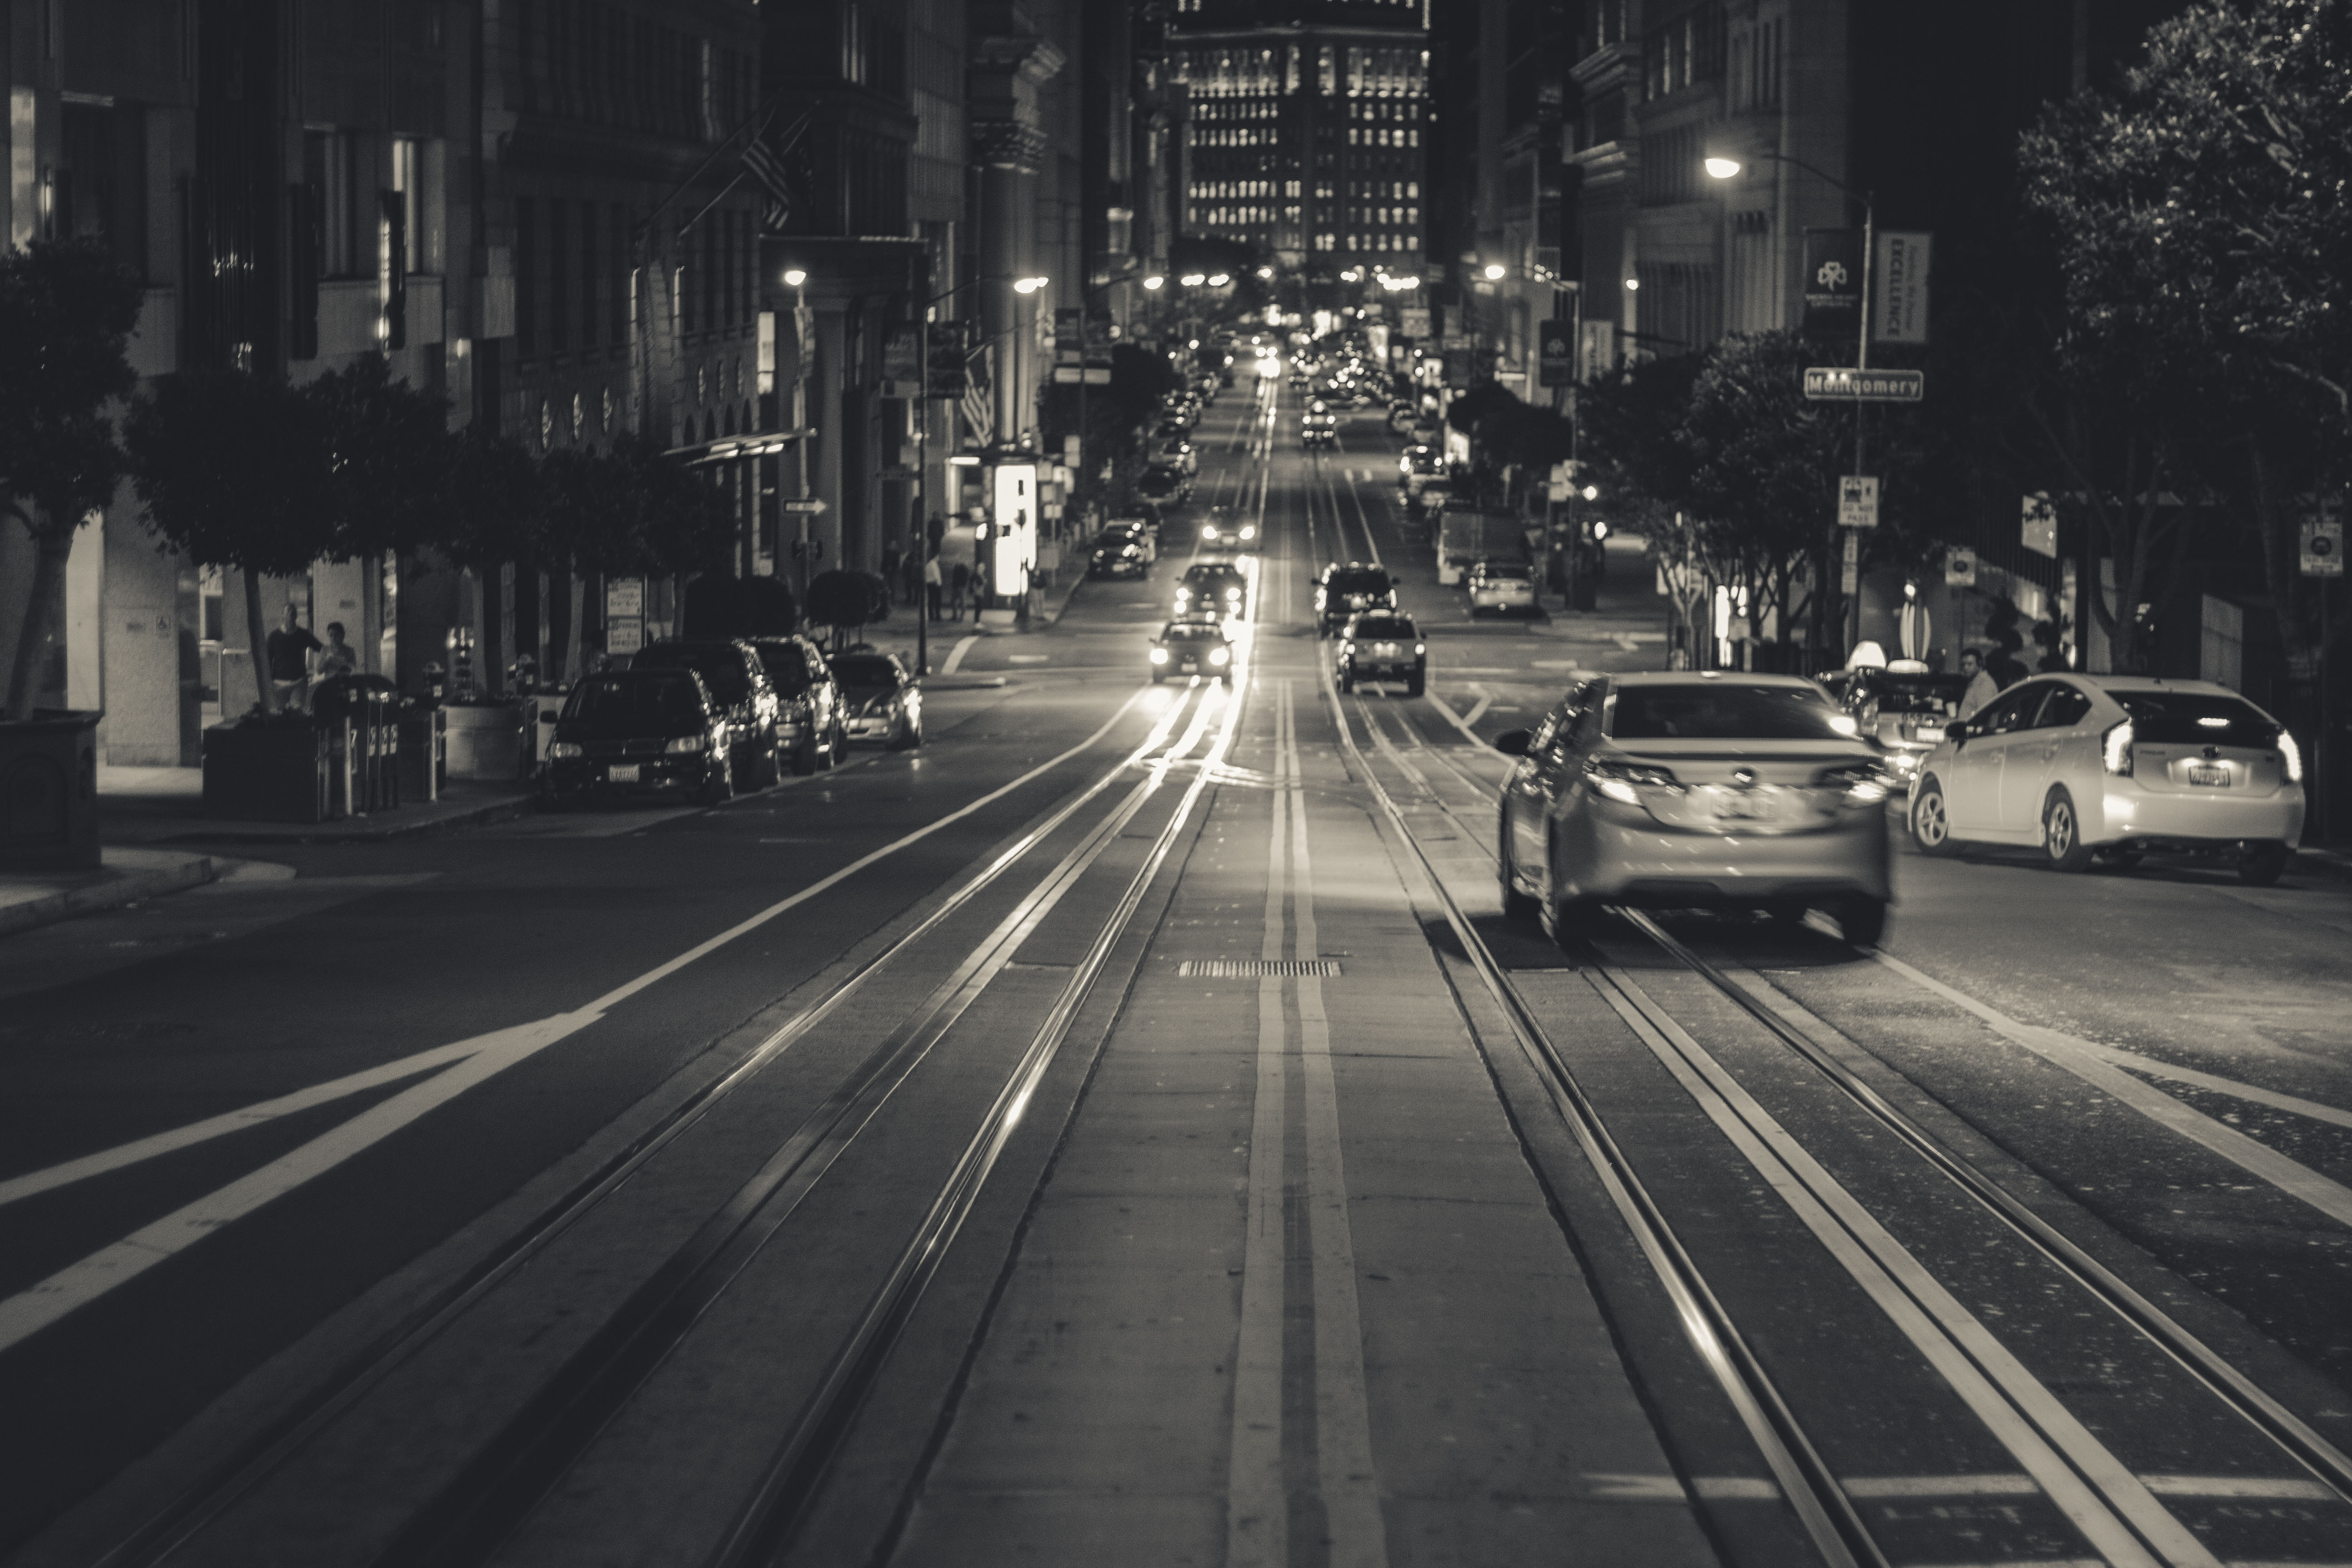 Streets of San Francisco in black and white, San Francisco, black and white, street, cars, people, night, steep street